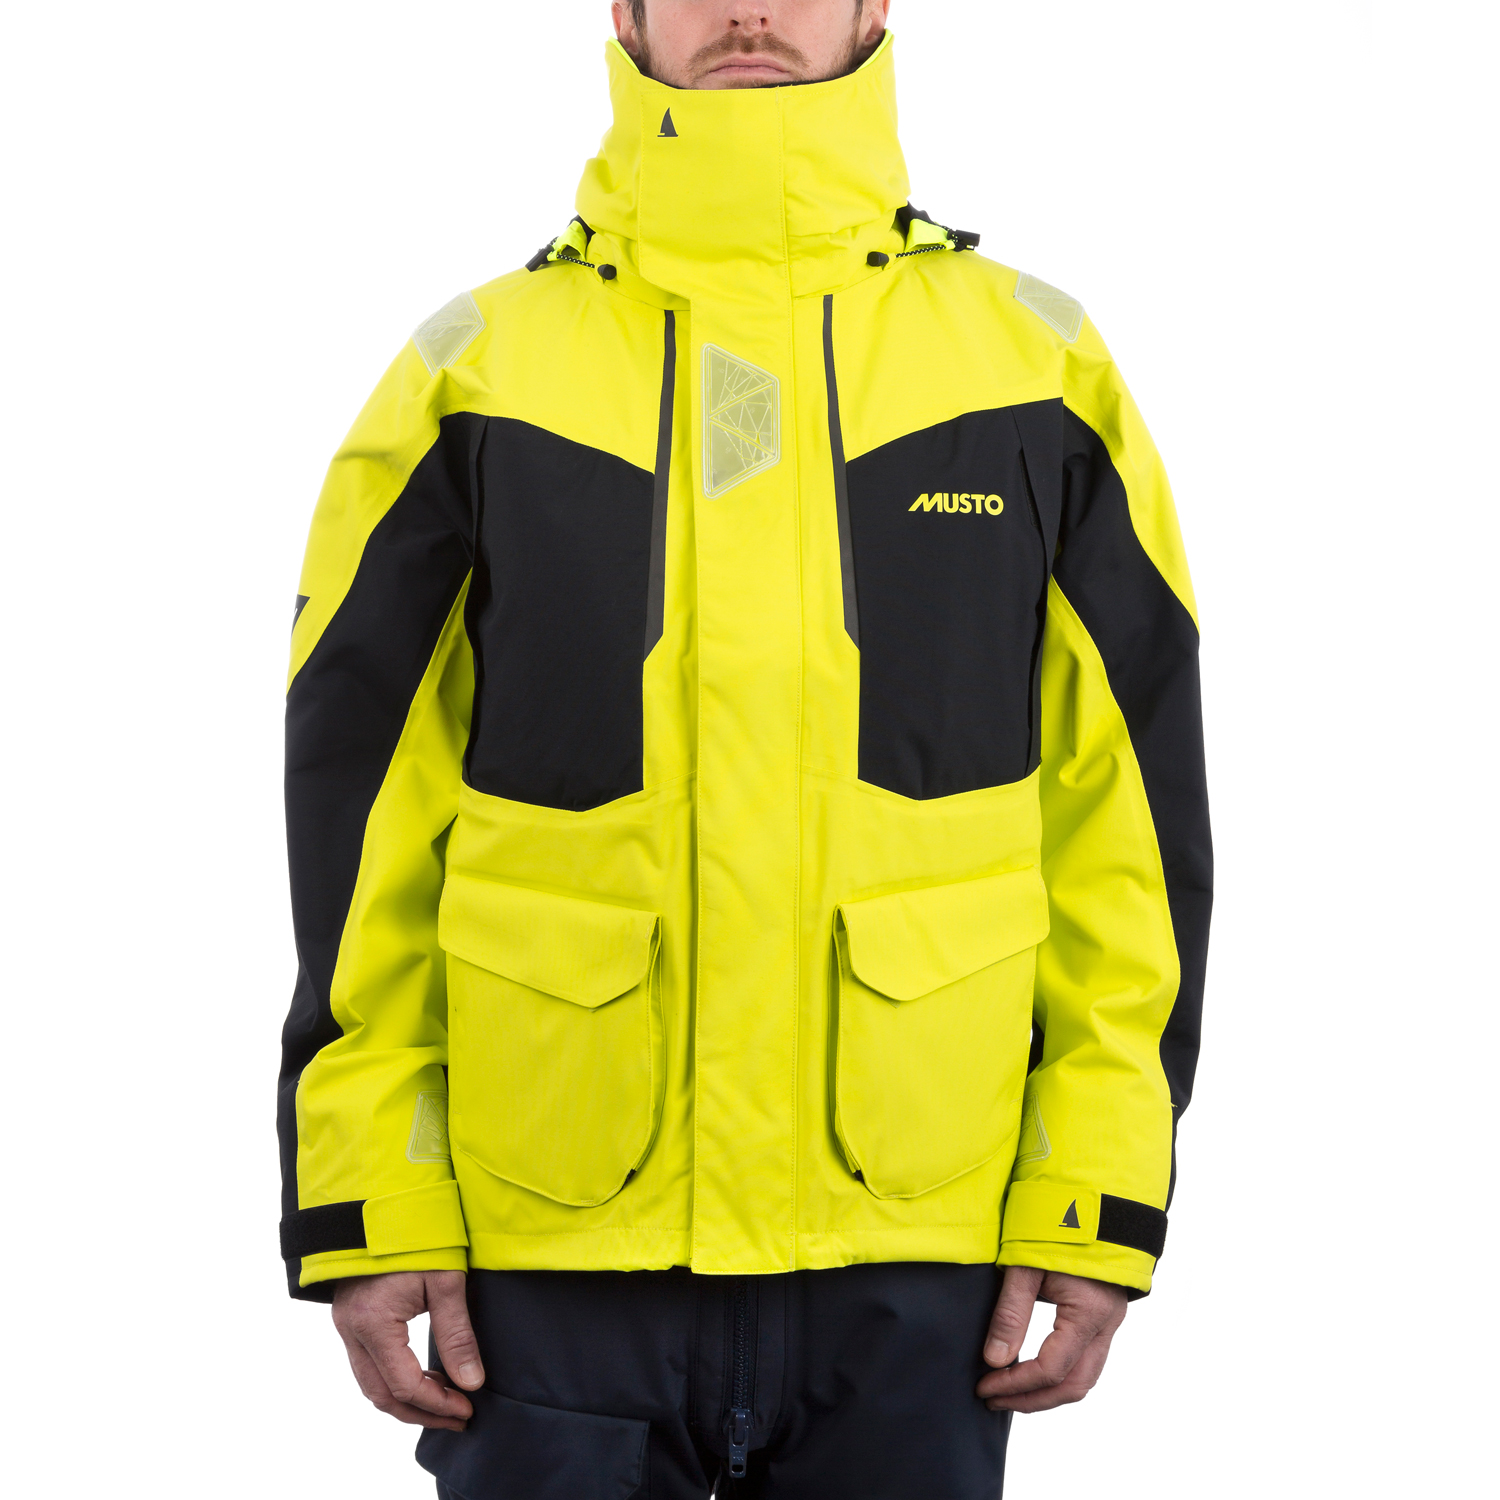 Musto BR2 Offshore Jacket 2017